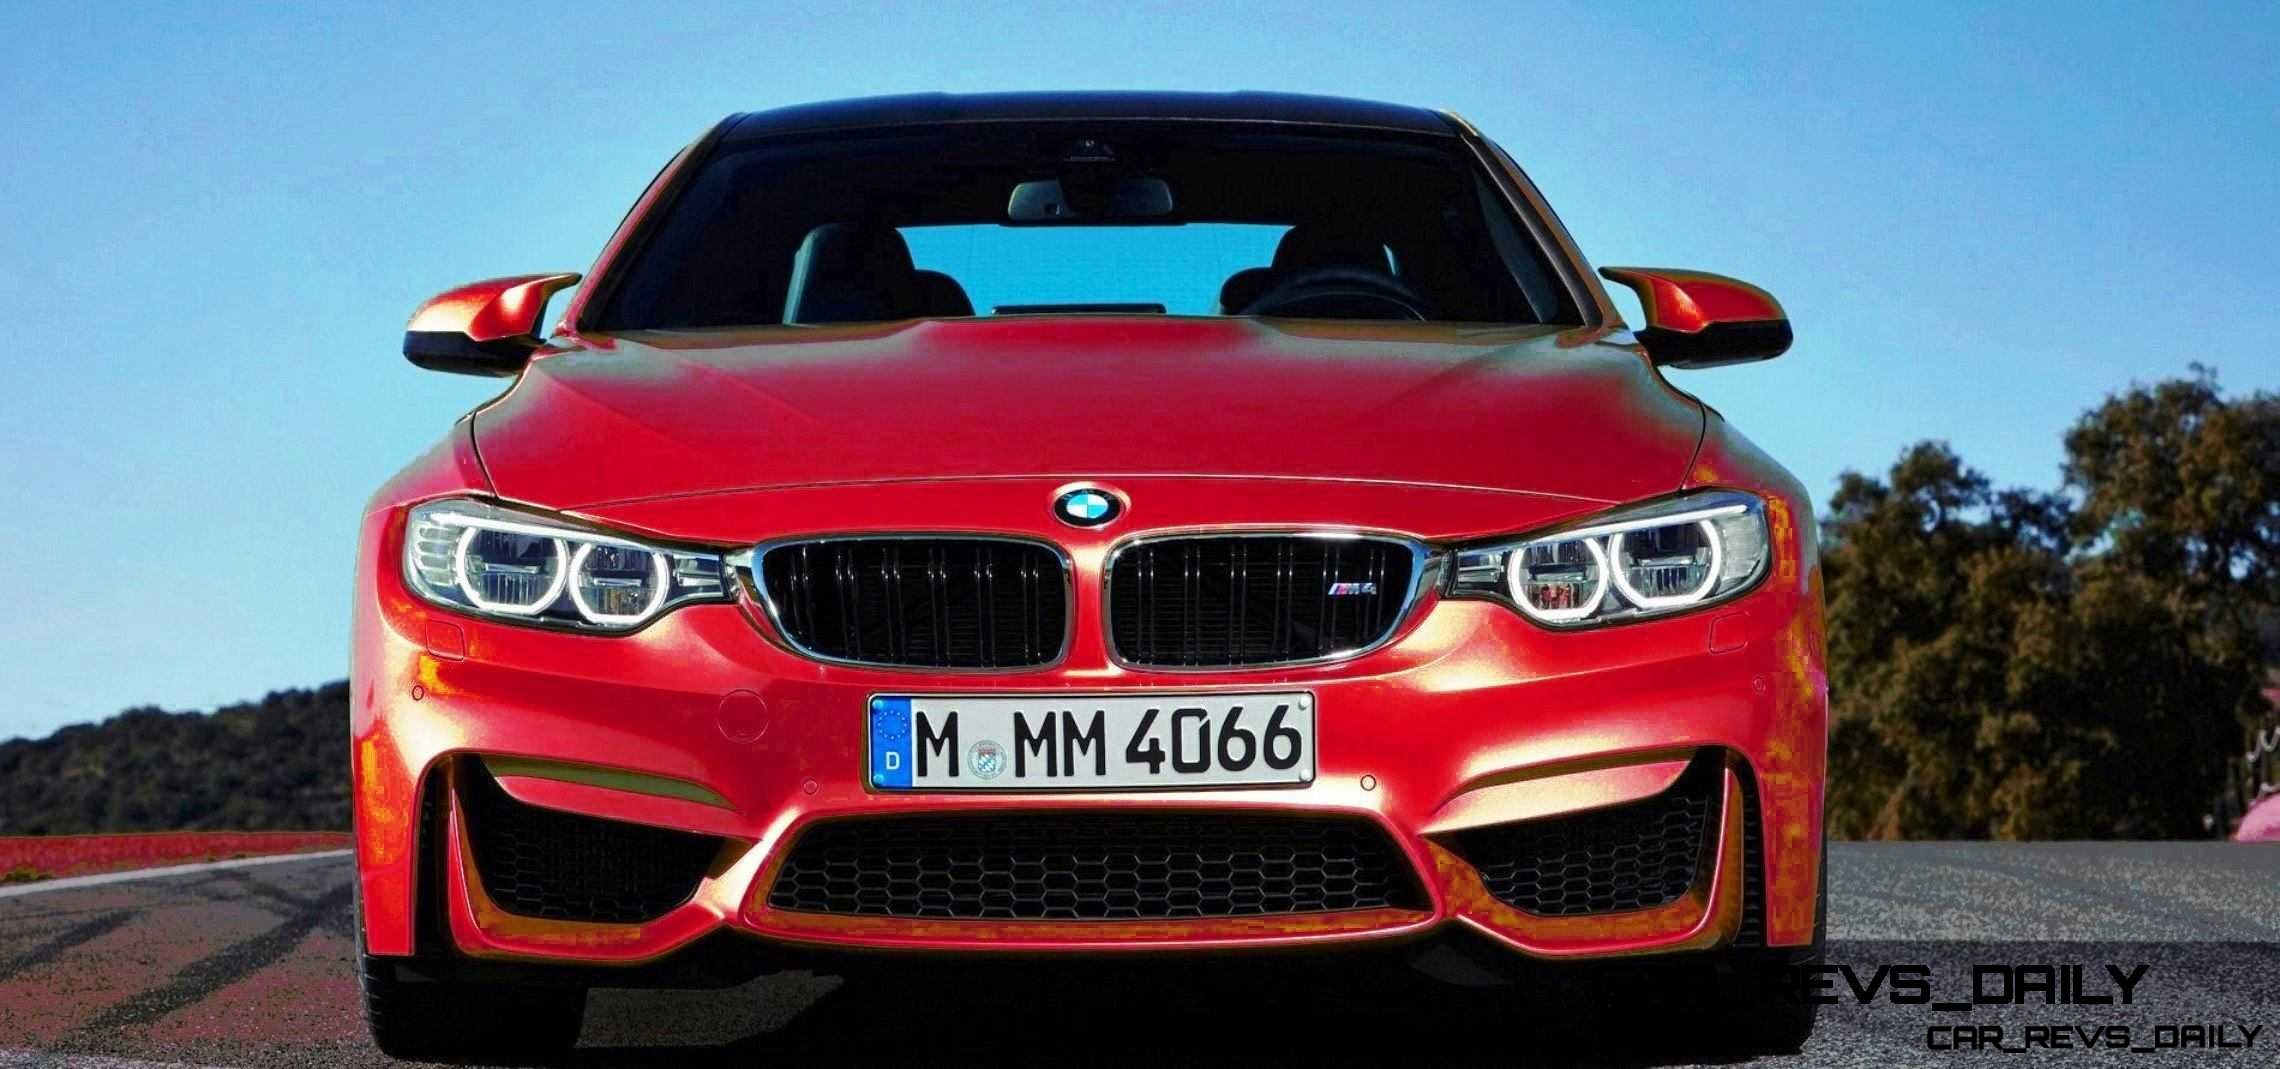 186mph-2014-BMW-M4-Screams-into-Focus-50red